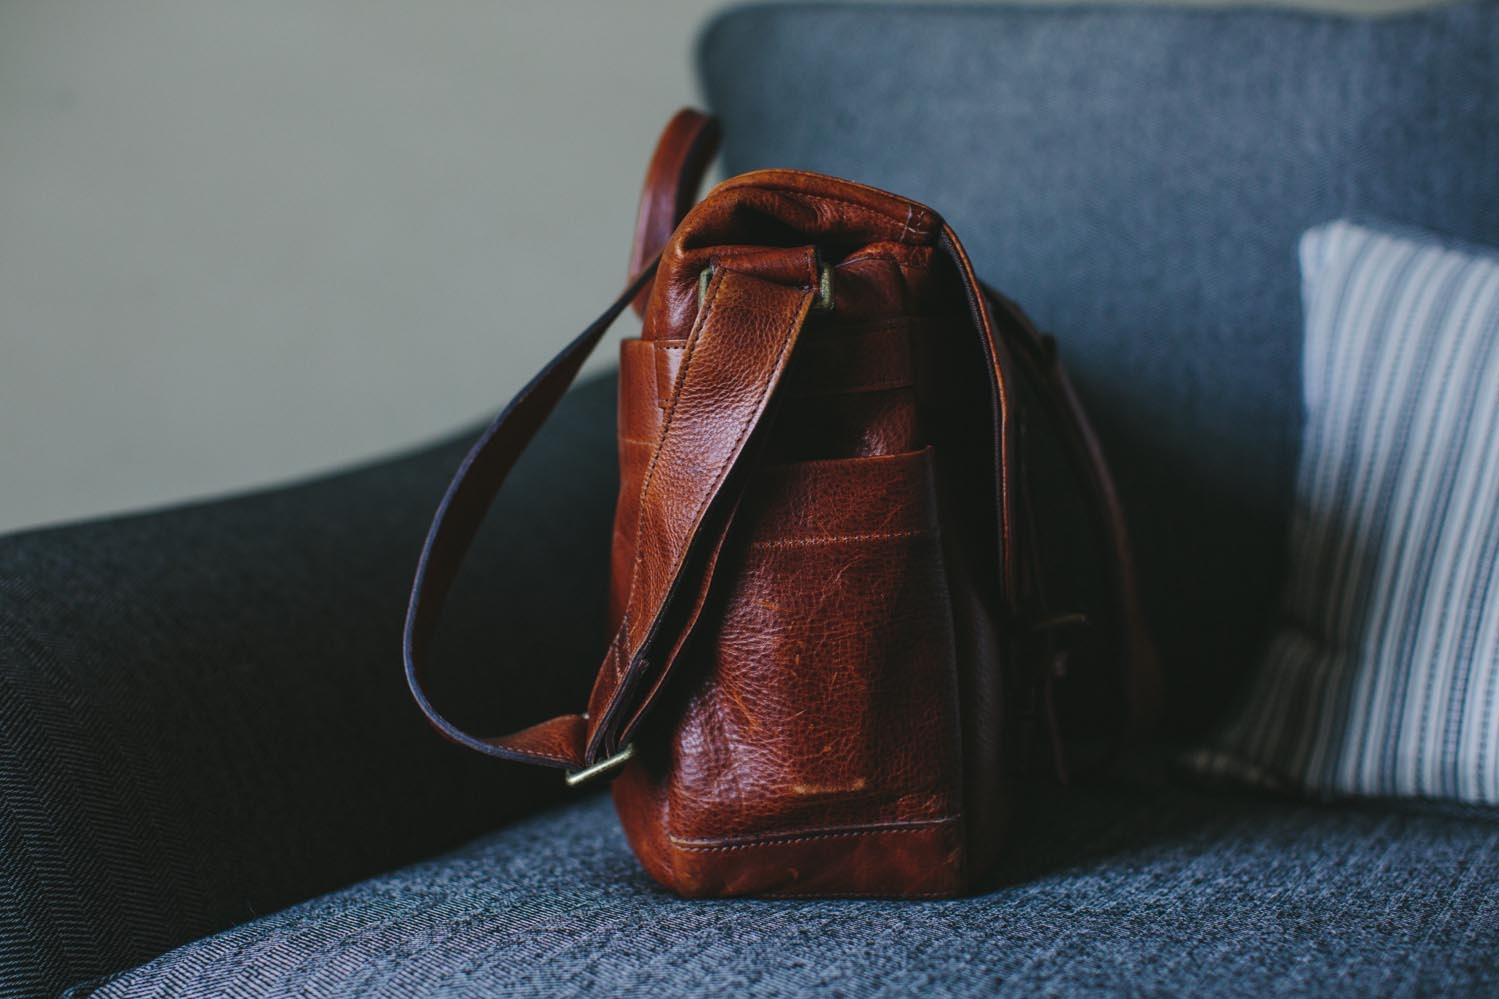 8cbe655b23935 The interior offers plenty of space for photographers' essentials and then  some. While the leather exterior will develop a rich character with time and  age, ...